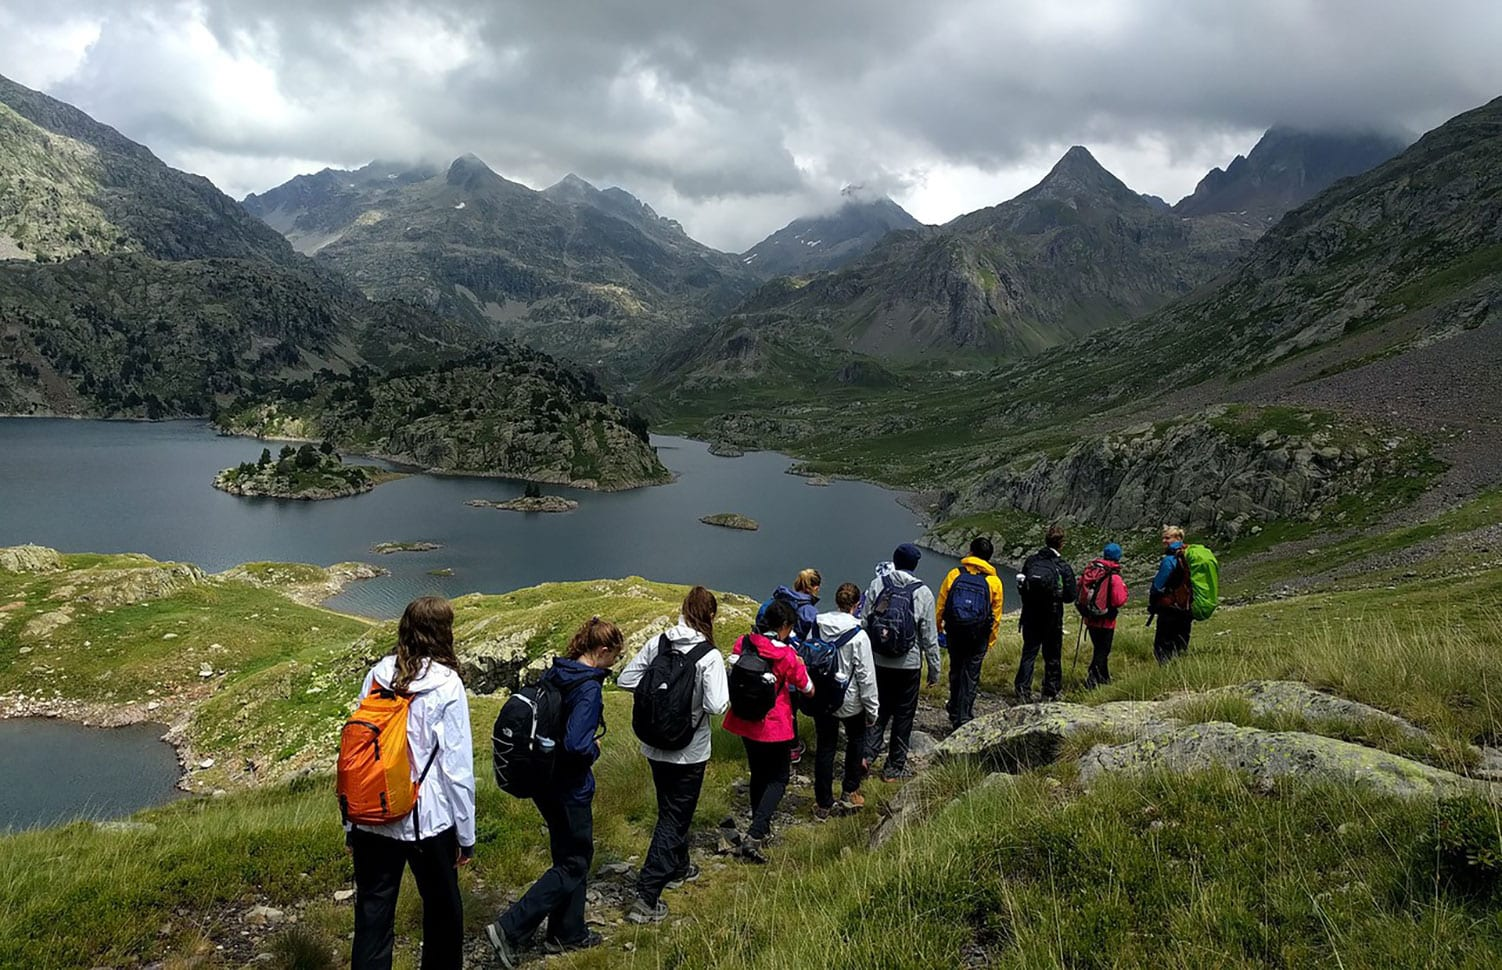 Teens hike single file into a beautiful summery mountain valley